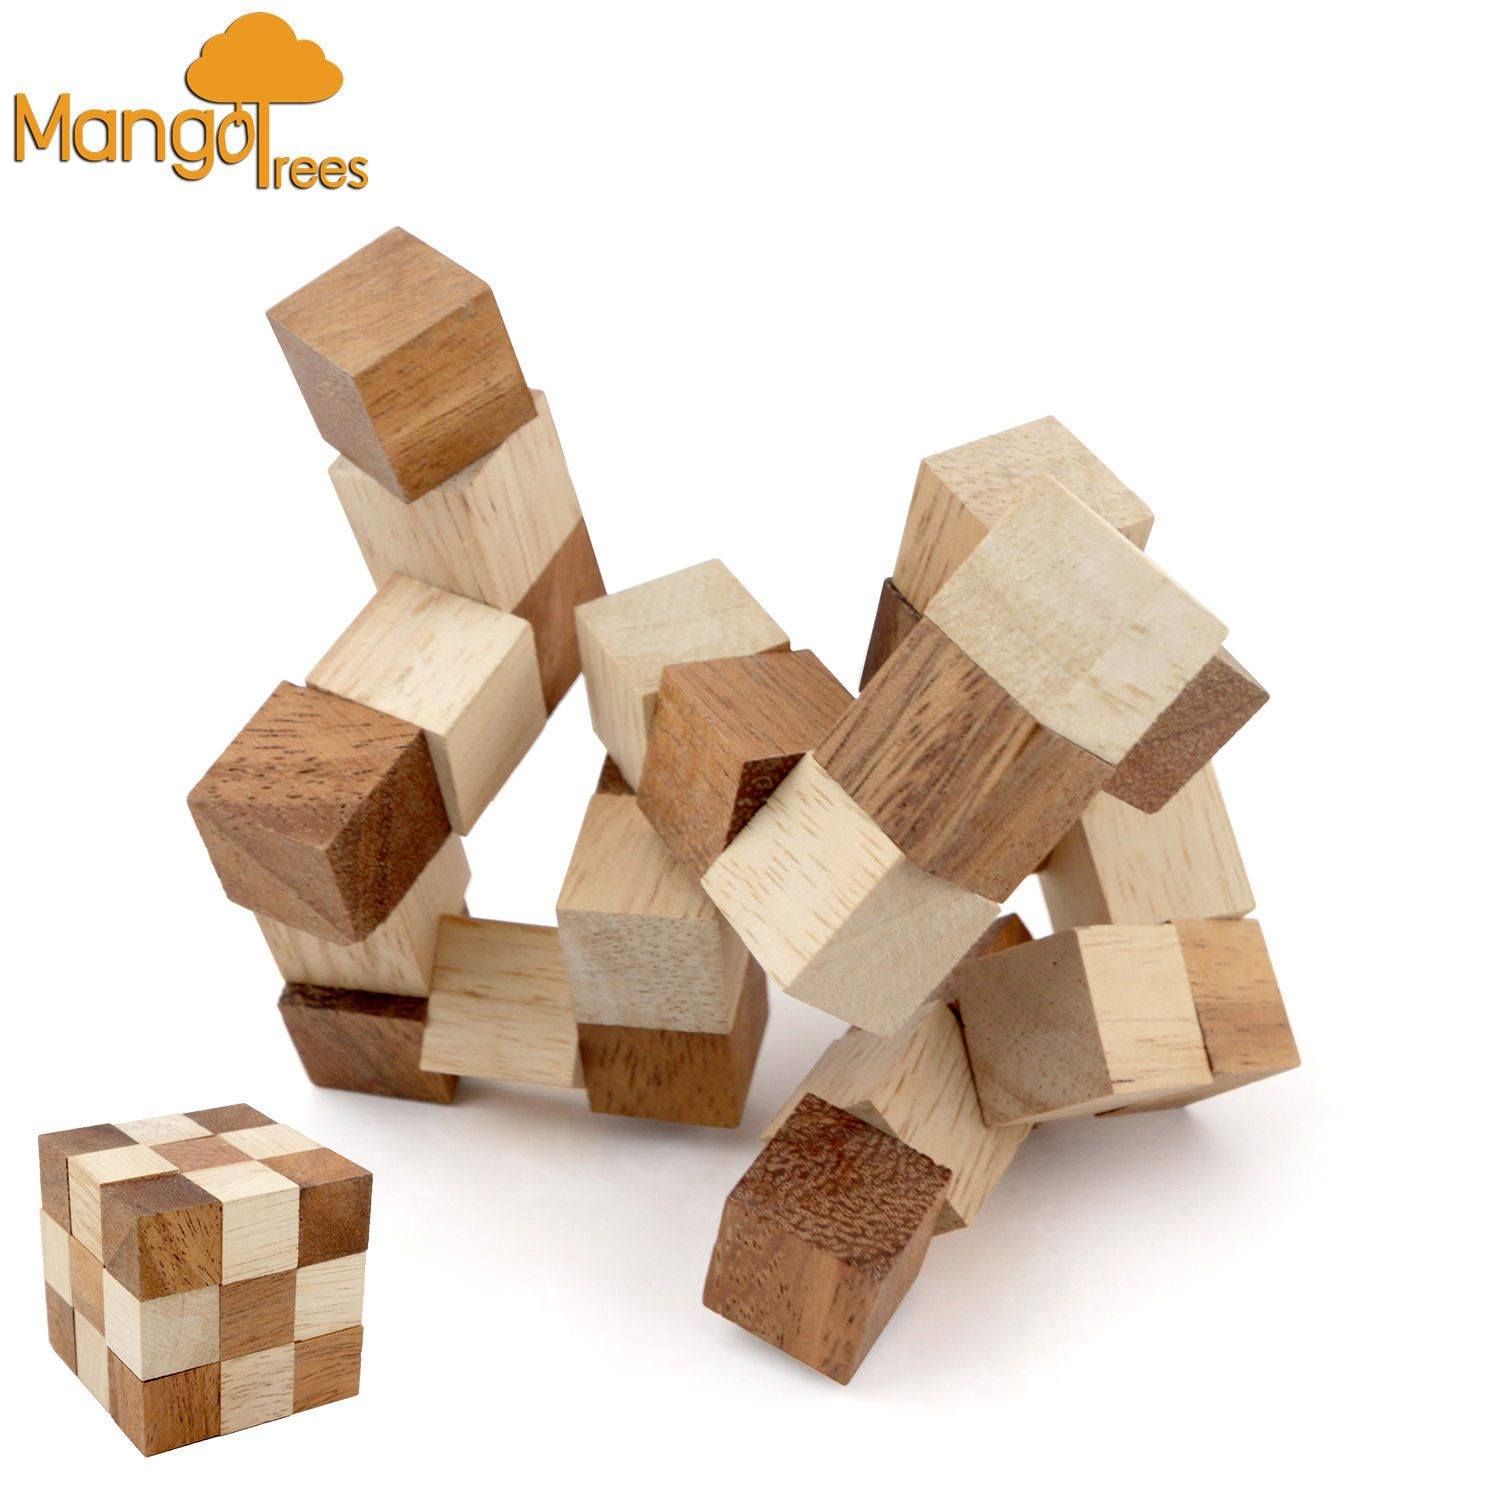 Wooden Puzzle Brain Teaser The Snake Puzzle Gp320l